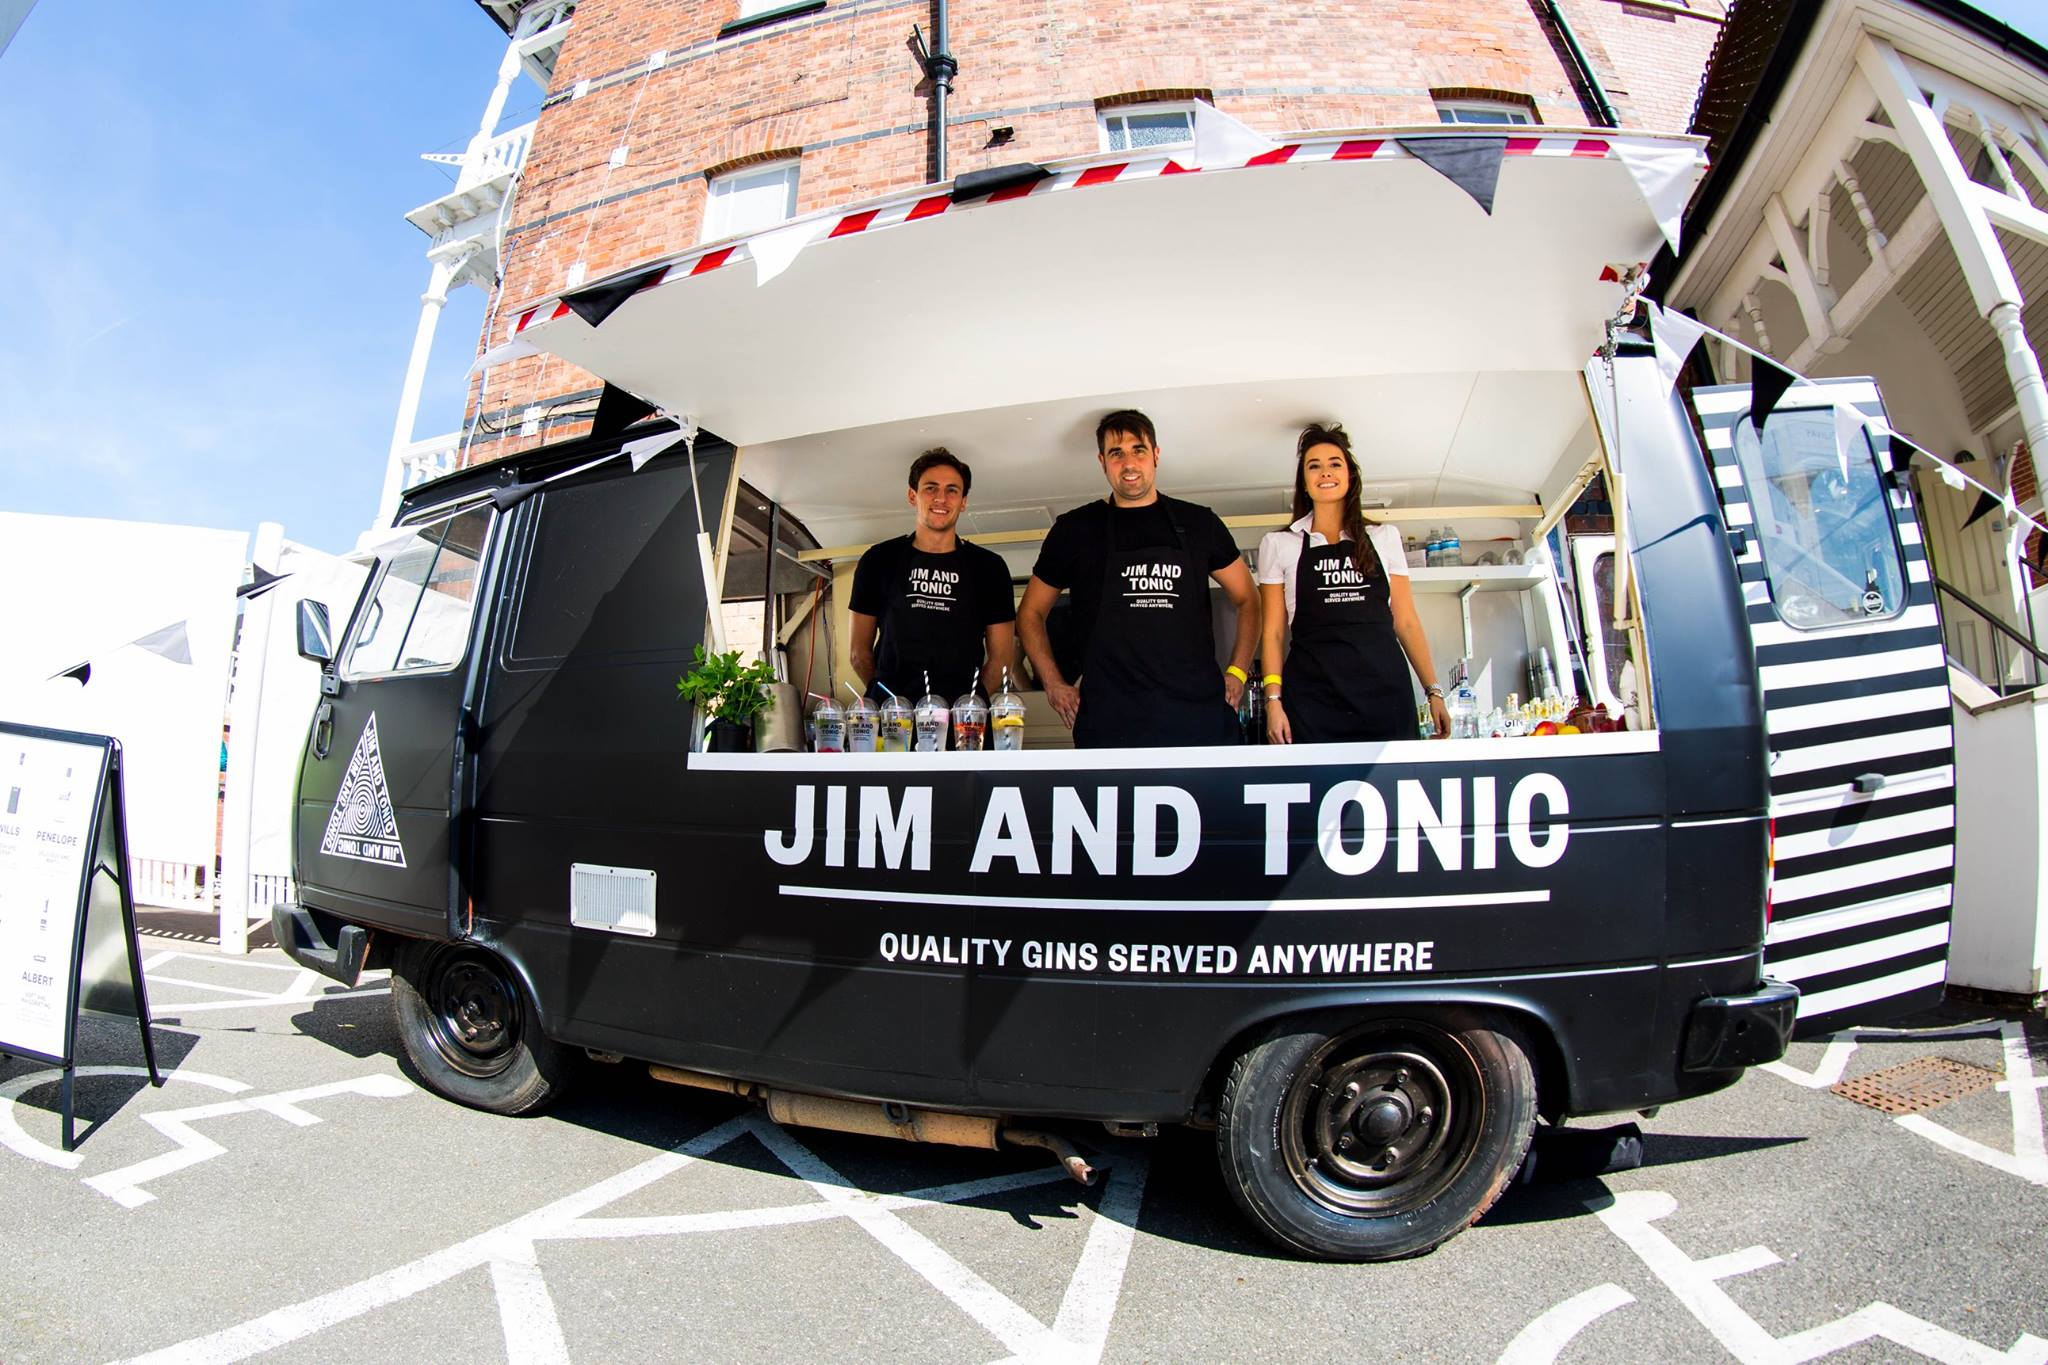 Urban Cordial - Jim and Tonic